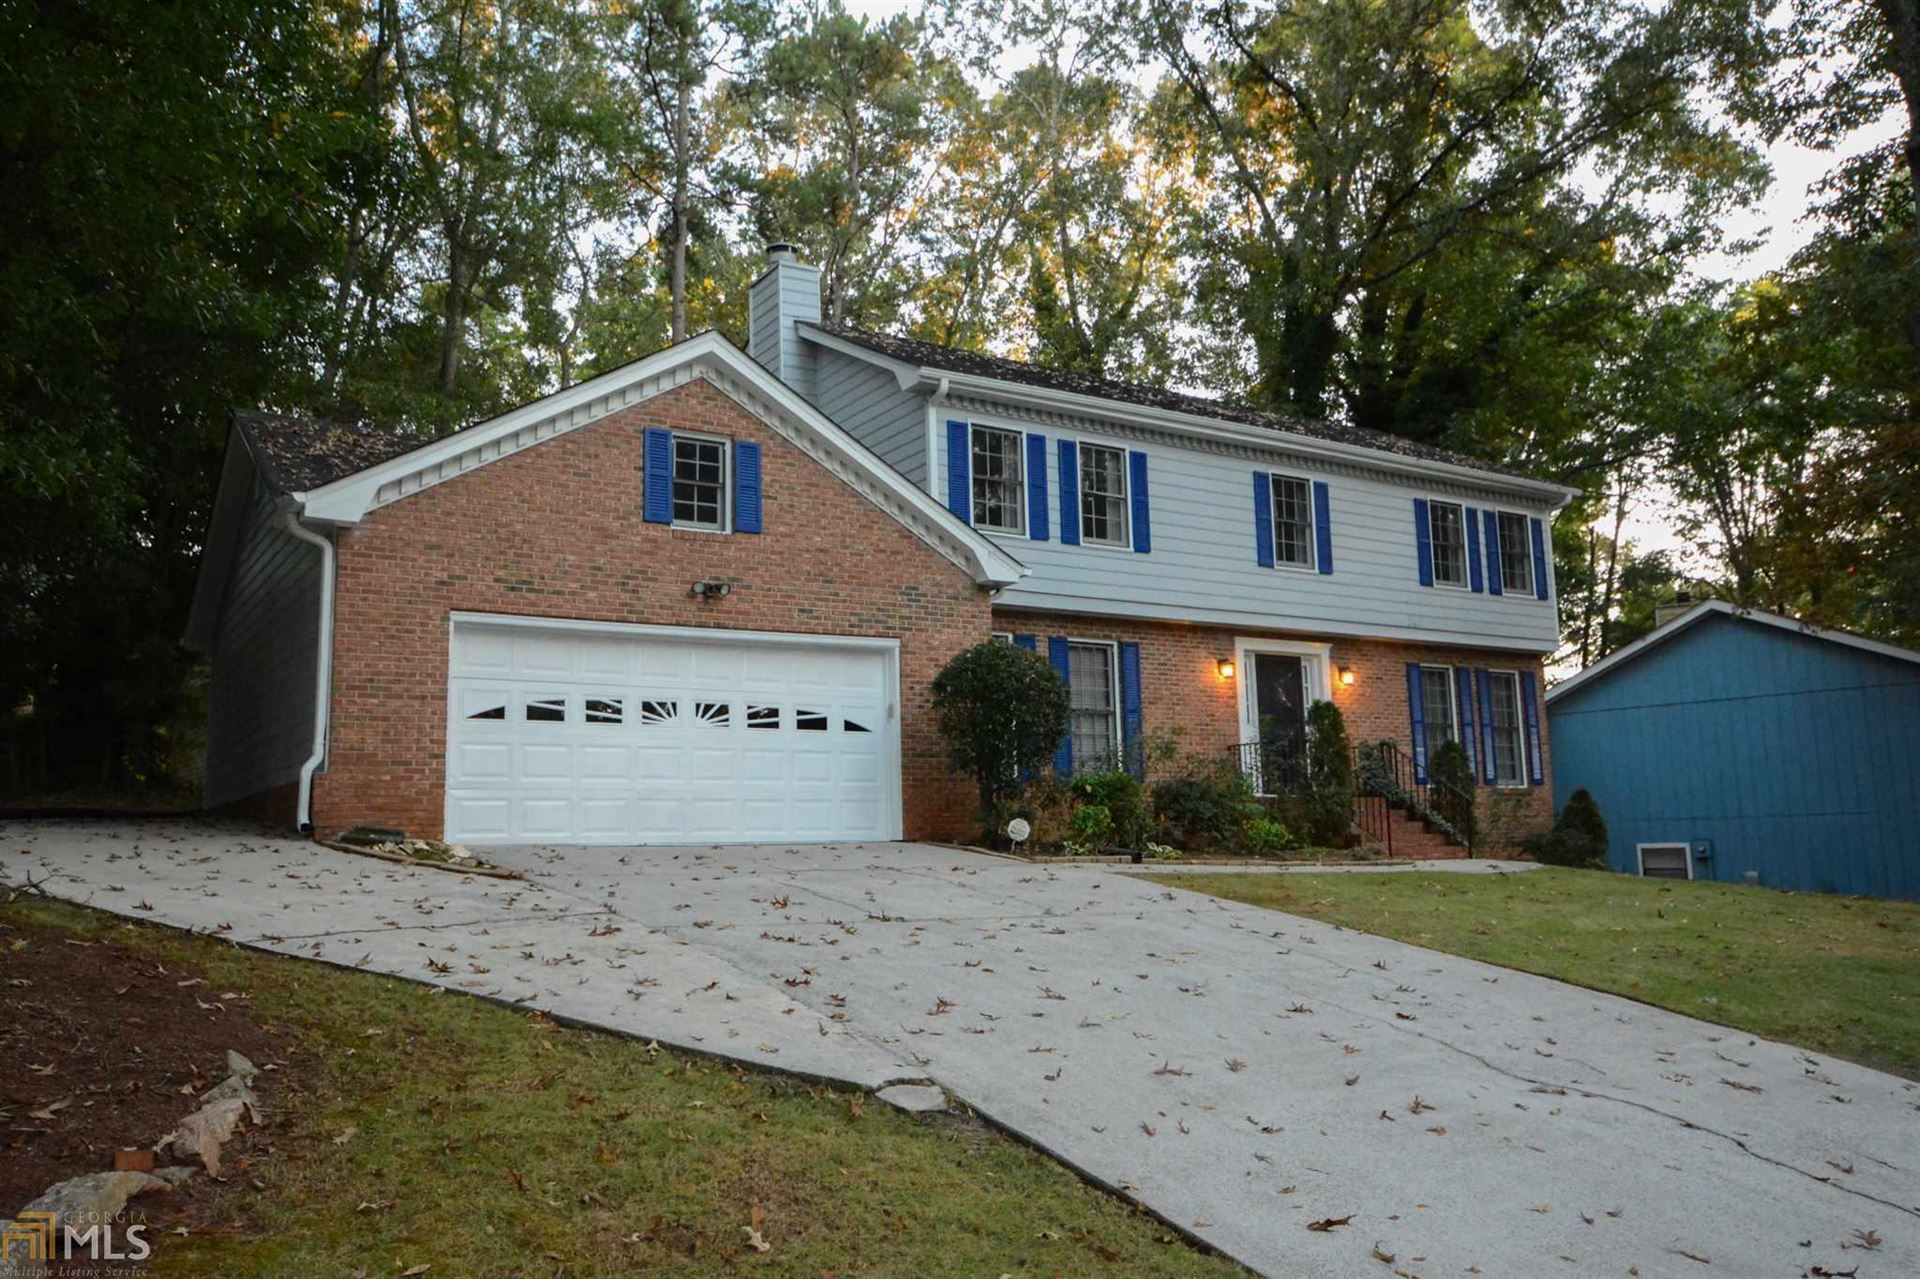 5067 Fieldgreen Xing, Stone Mountain, GA 30088 - #: 8879178